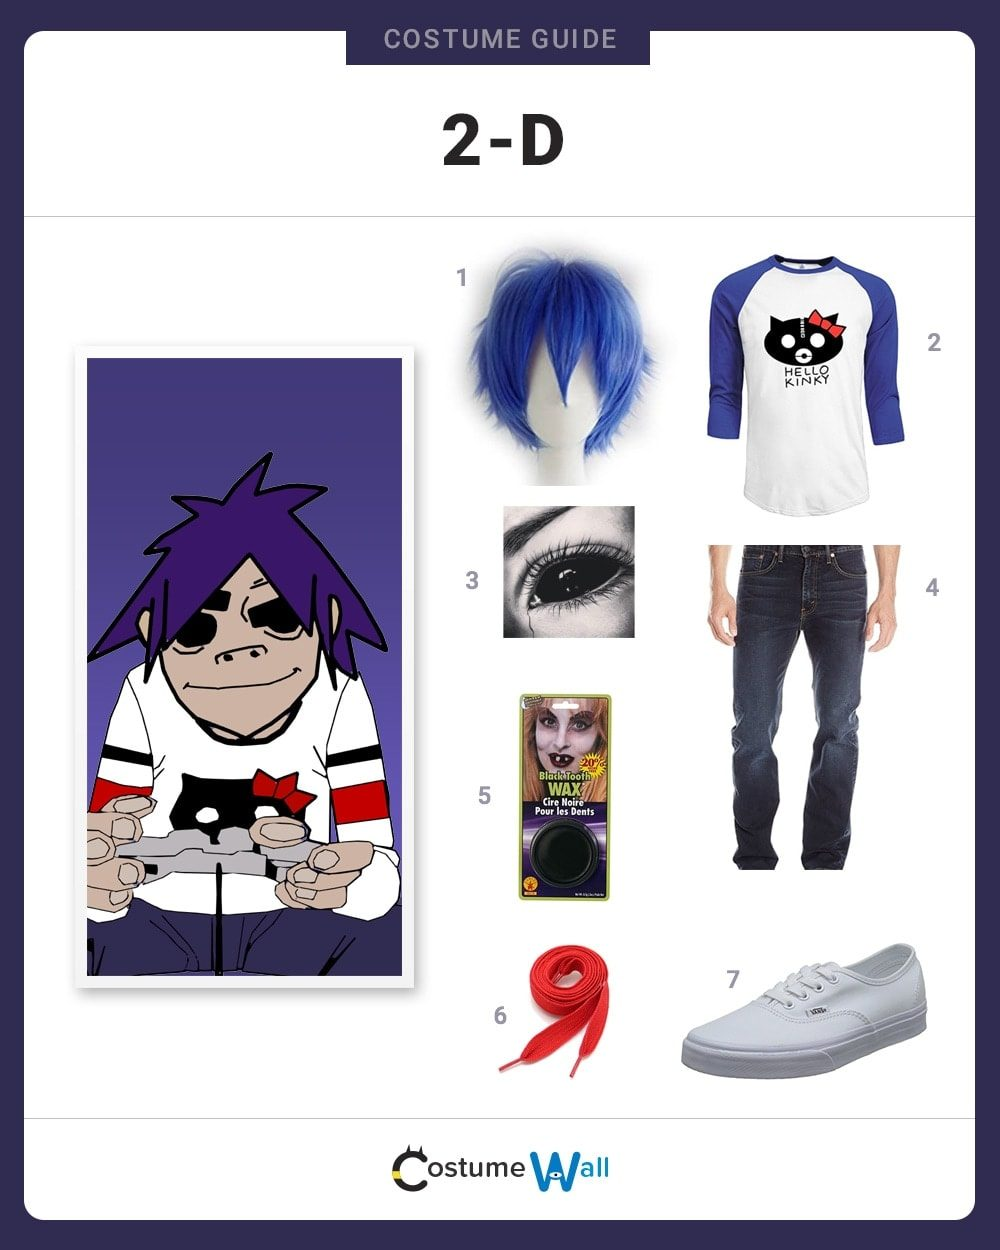 2-D Costume Guide